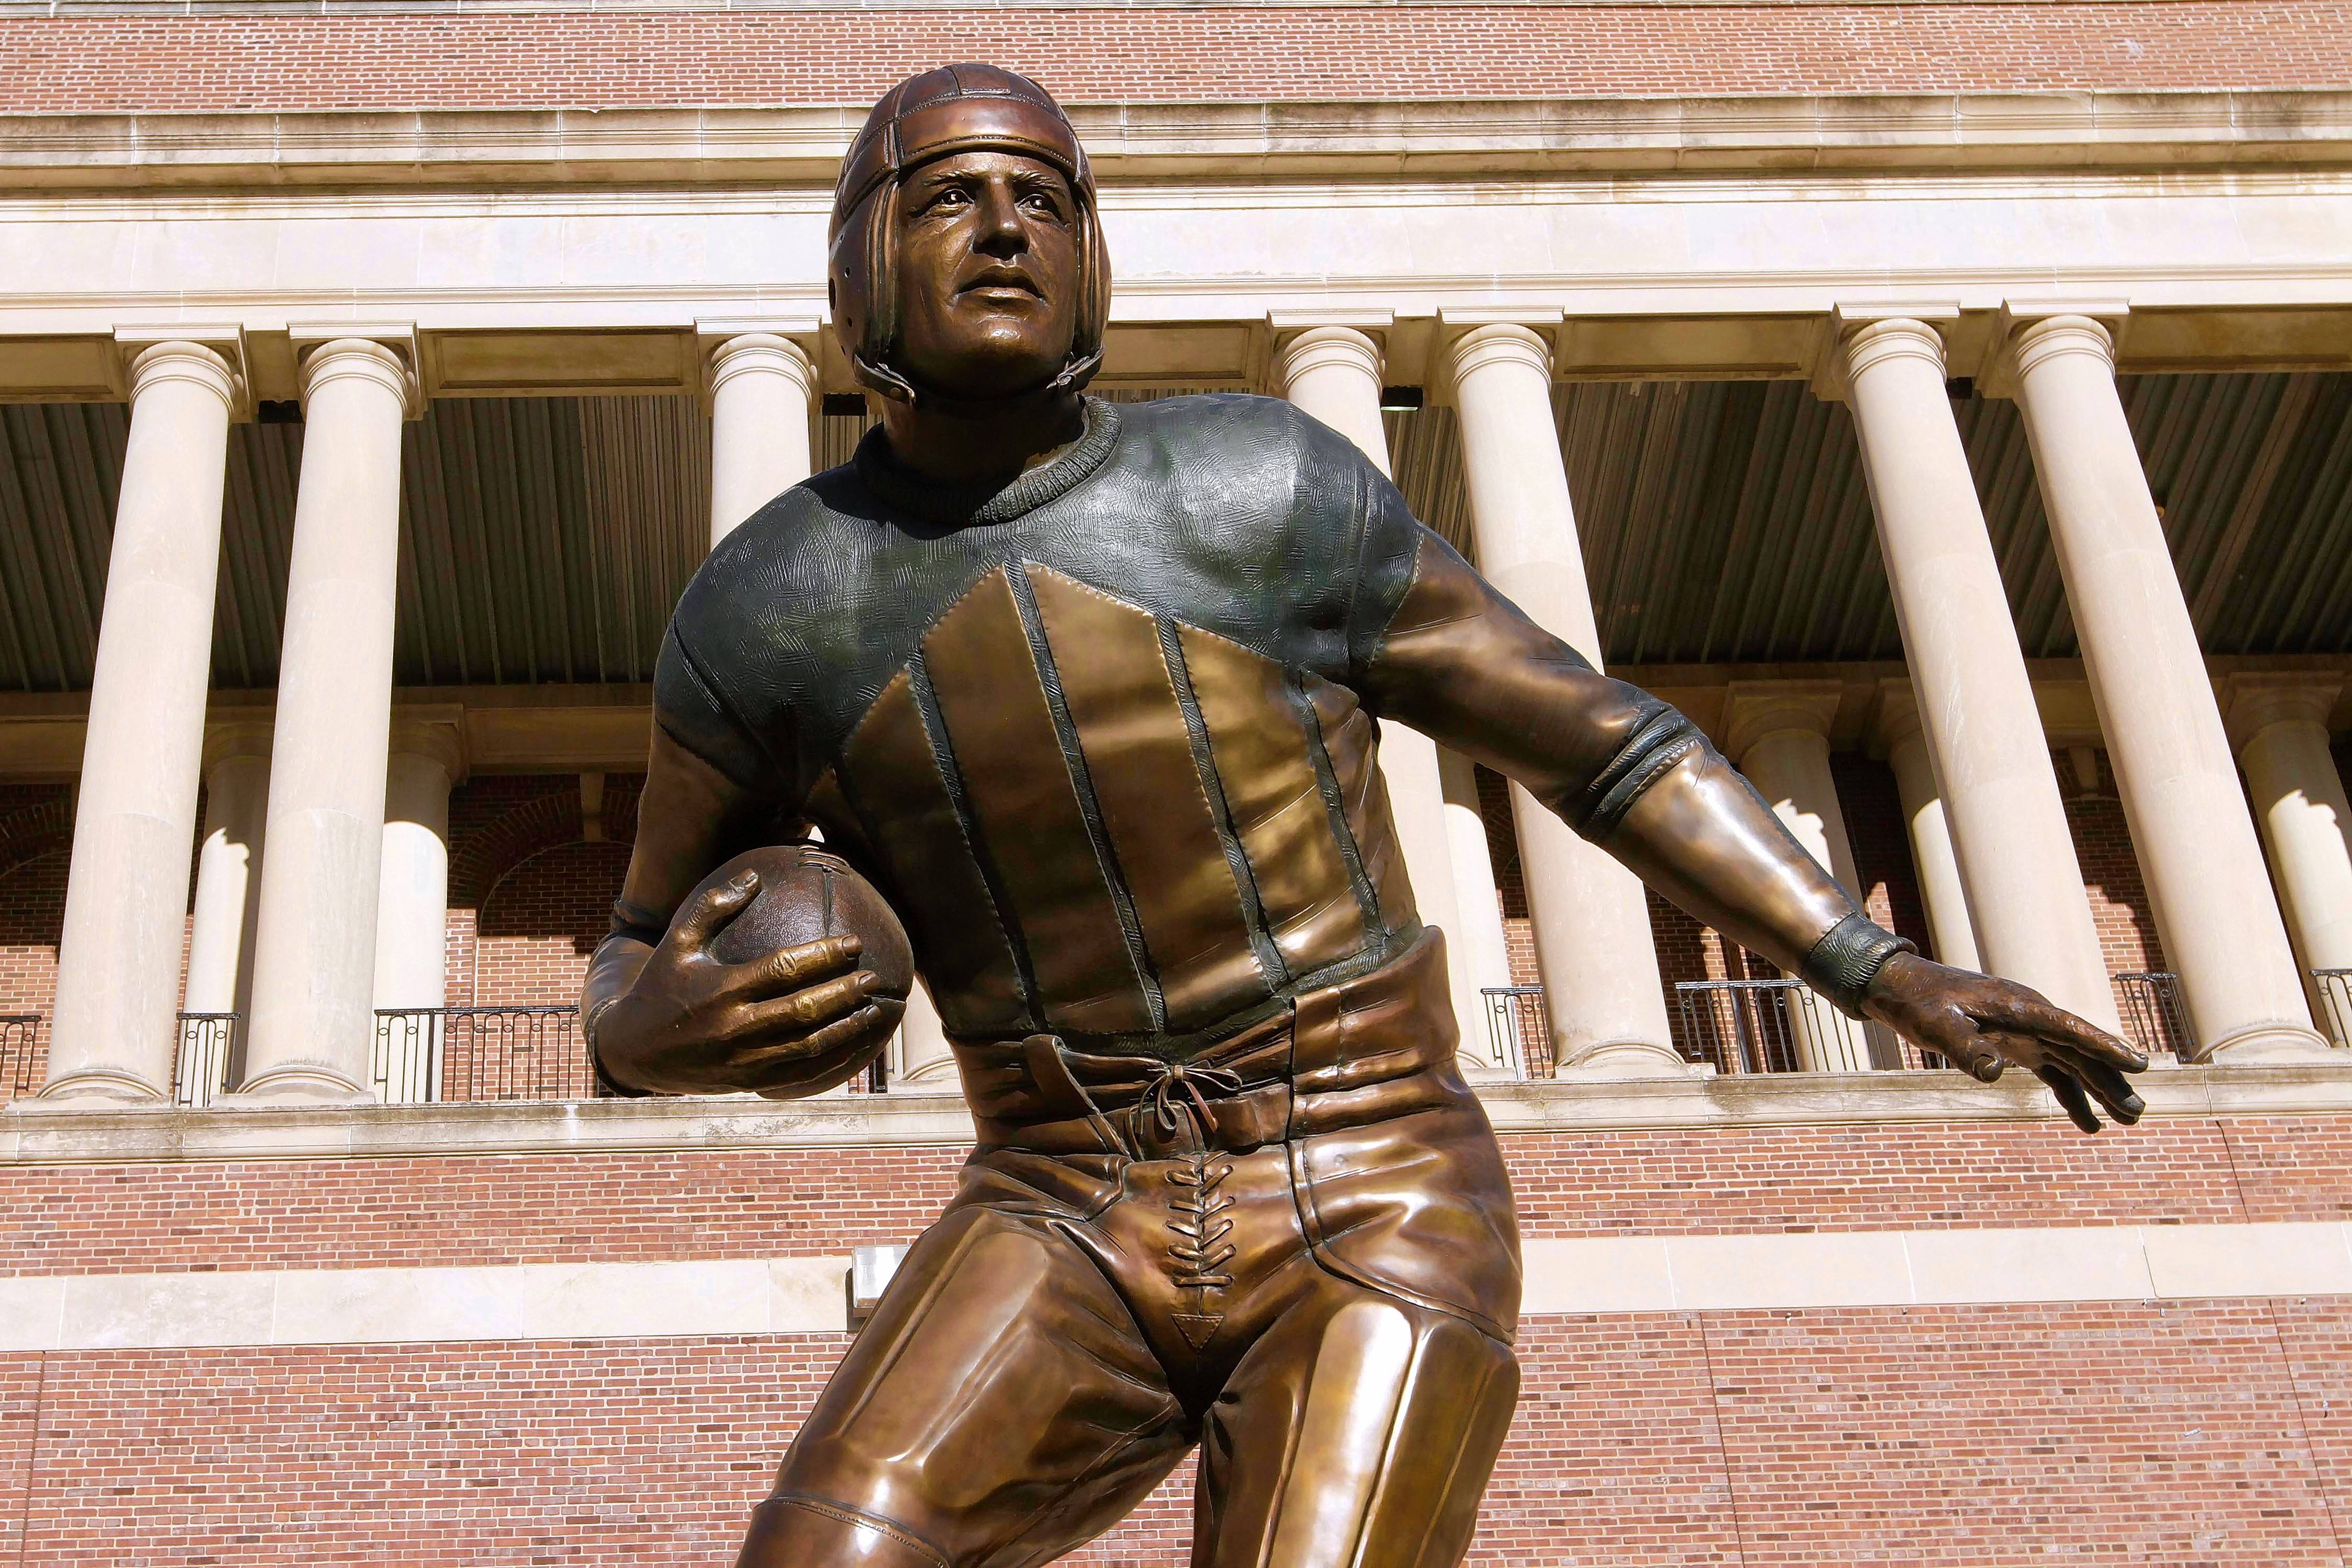 This statue of Red Grange, seen outside of Memorial Stadium, the home of the University of Illinois Fighting Illini, was designed by an artist who also has been commissioned to create one to honor Dick Butkus.